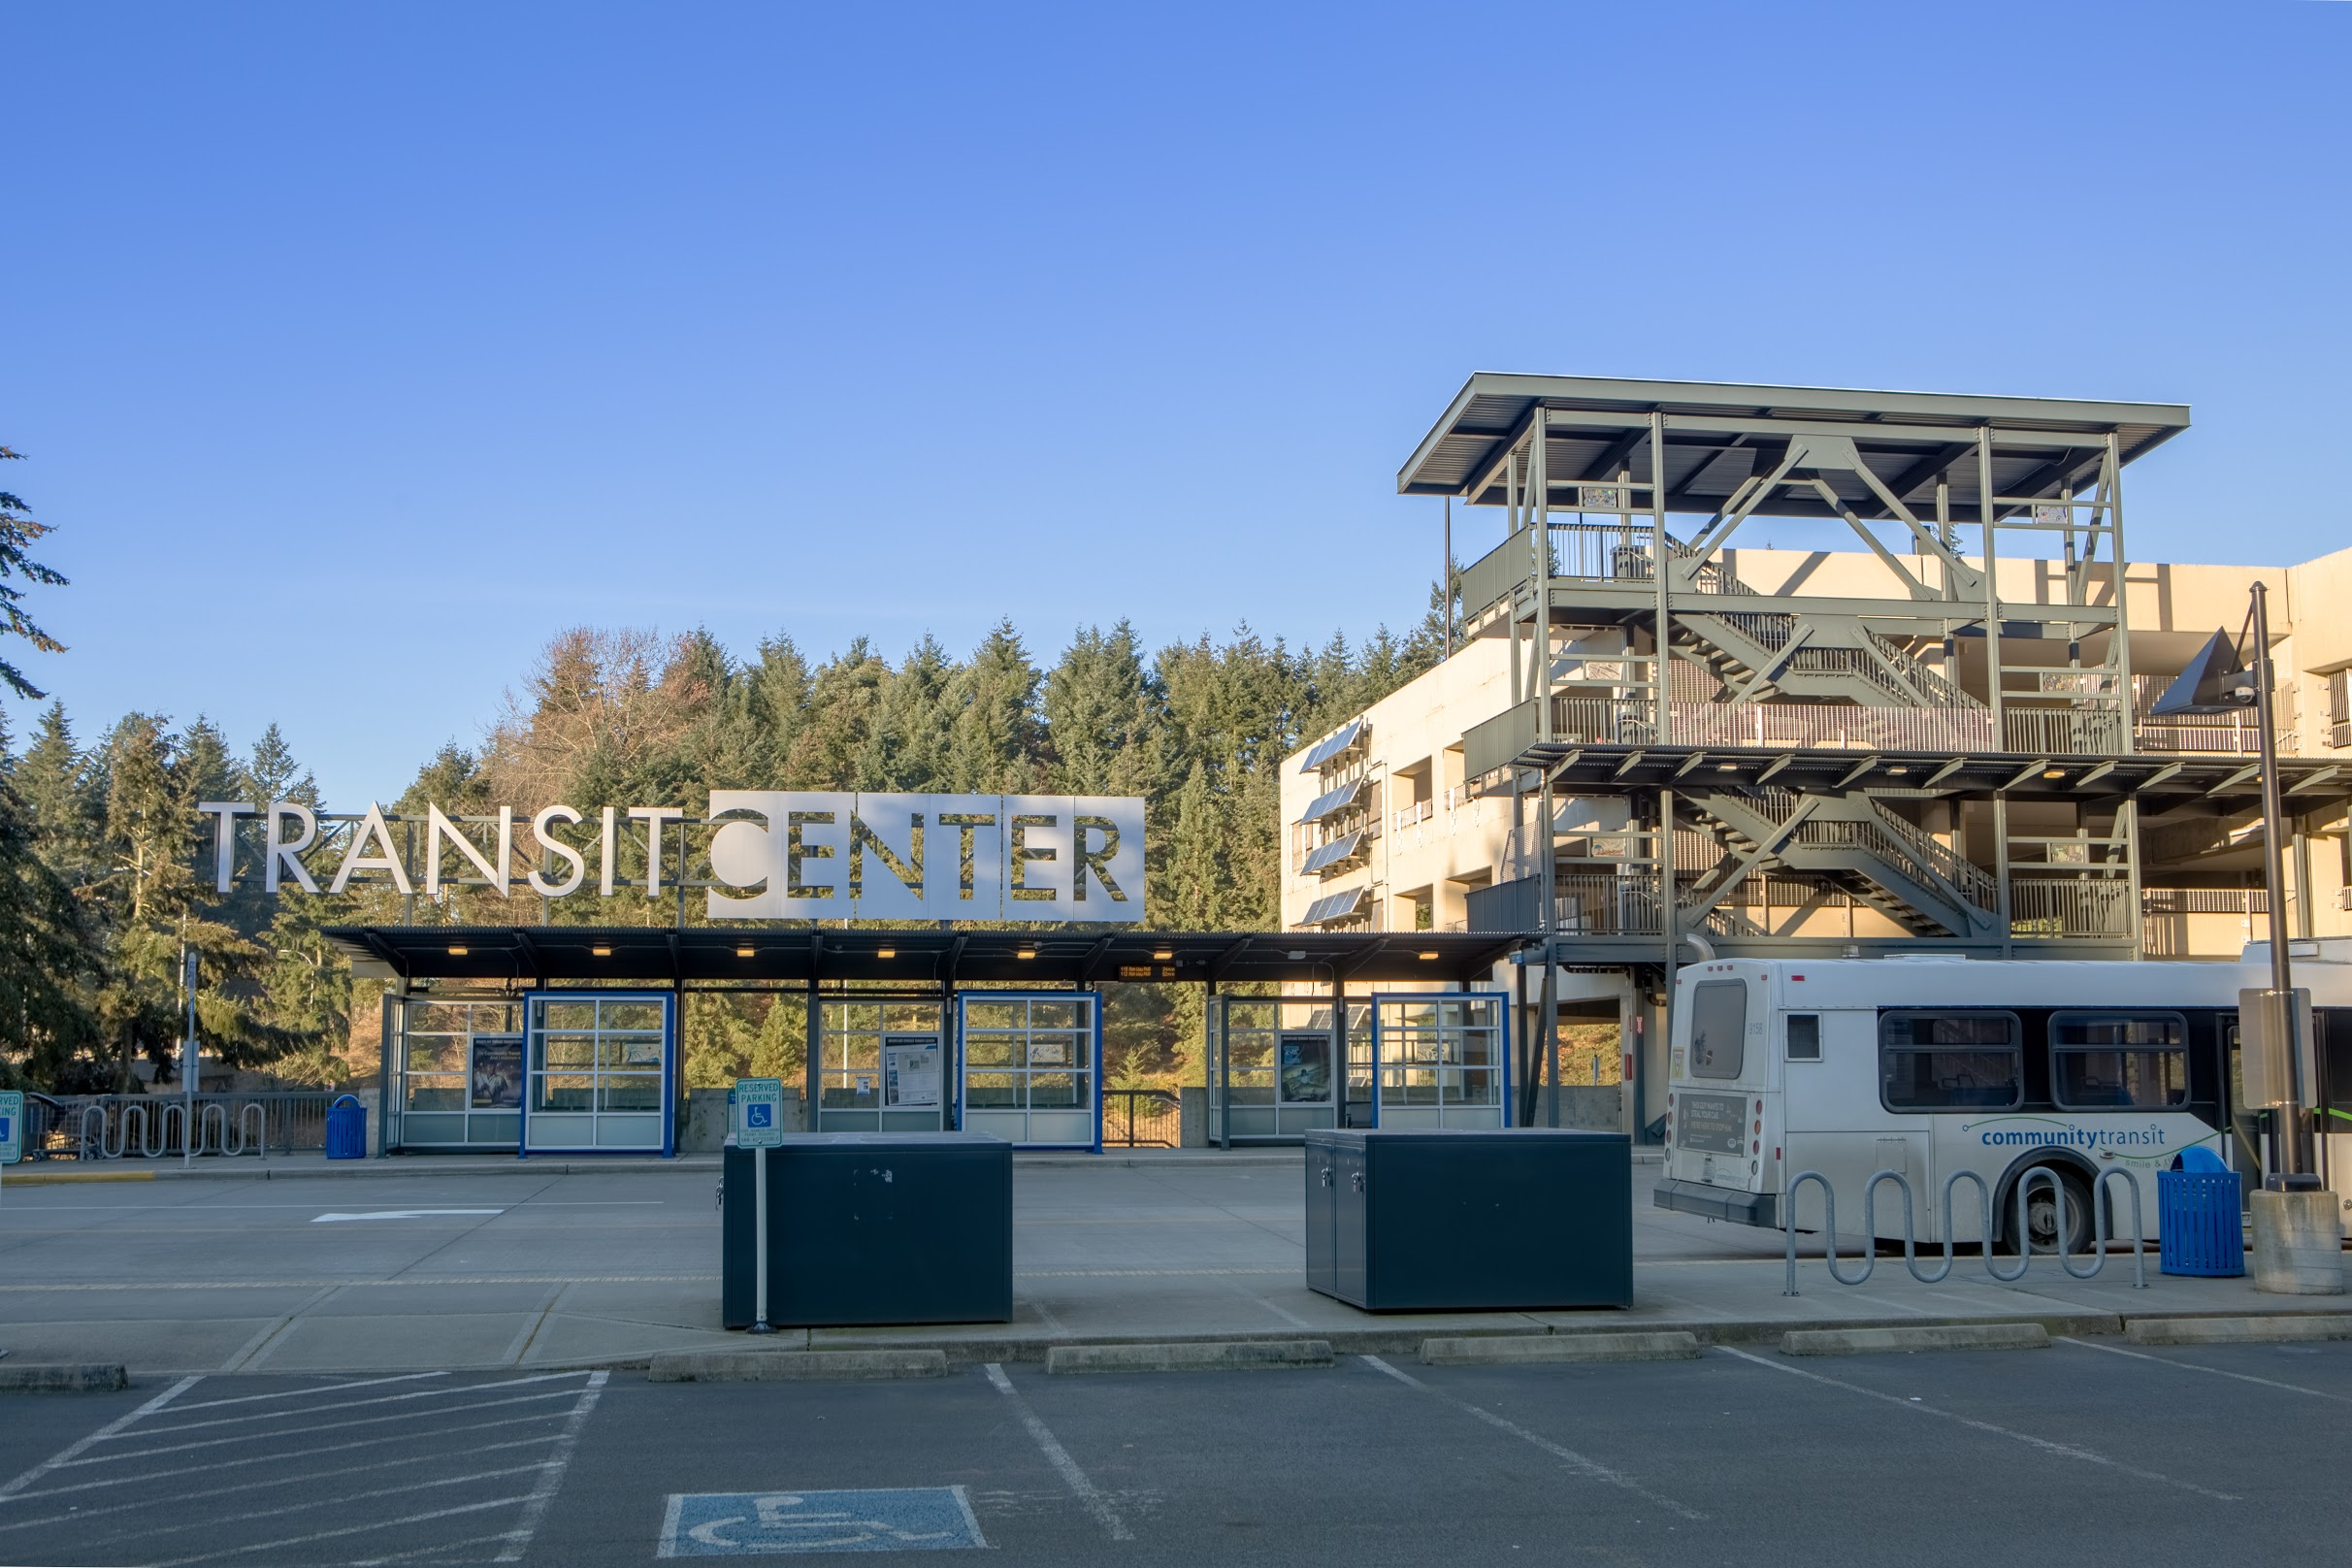 WindermereNorth_MountlakeTerrace_TransitCenter_1.jpg